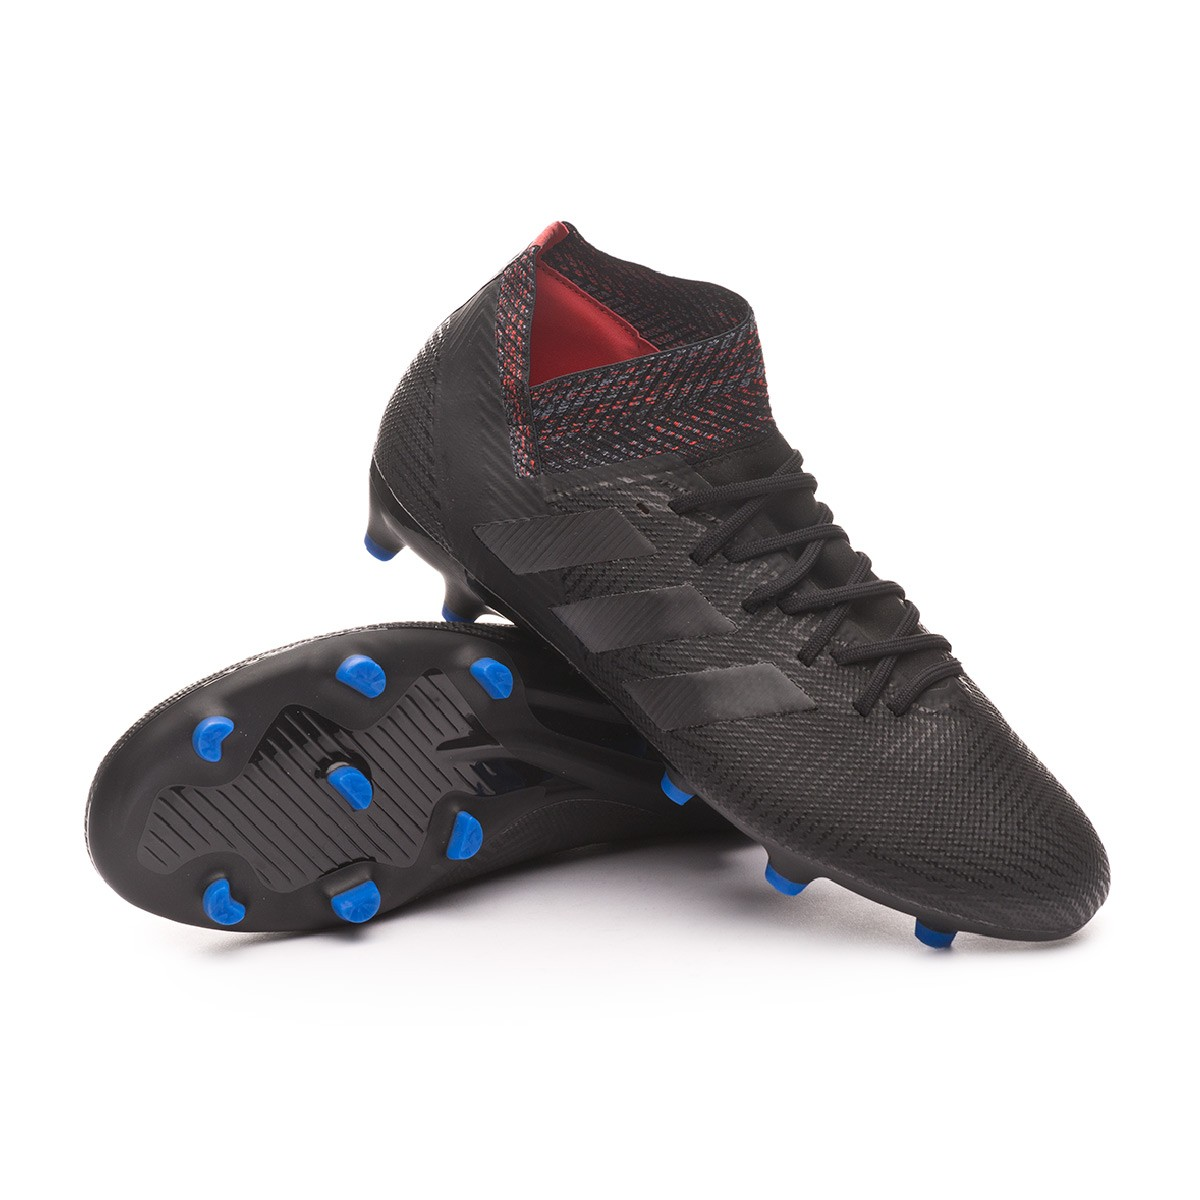 a9babcf8b76c Football Boots adidas Nemeziz 18.3 FG Core black-Football blue - Football  store Fútbol Emotion